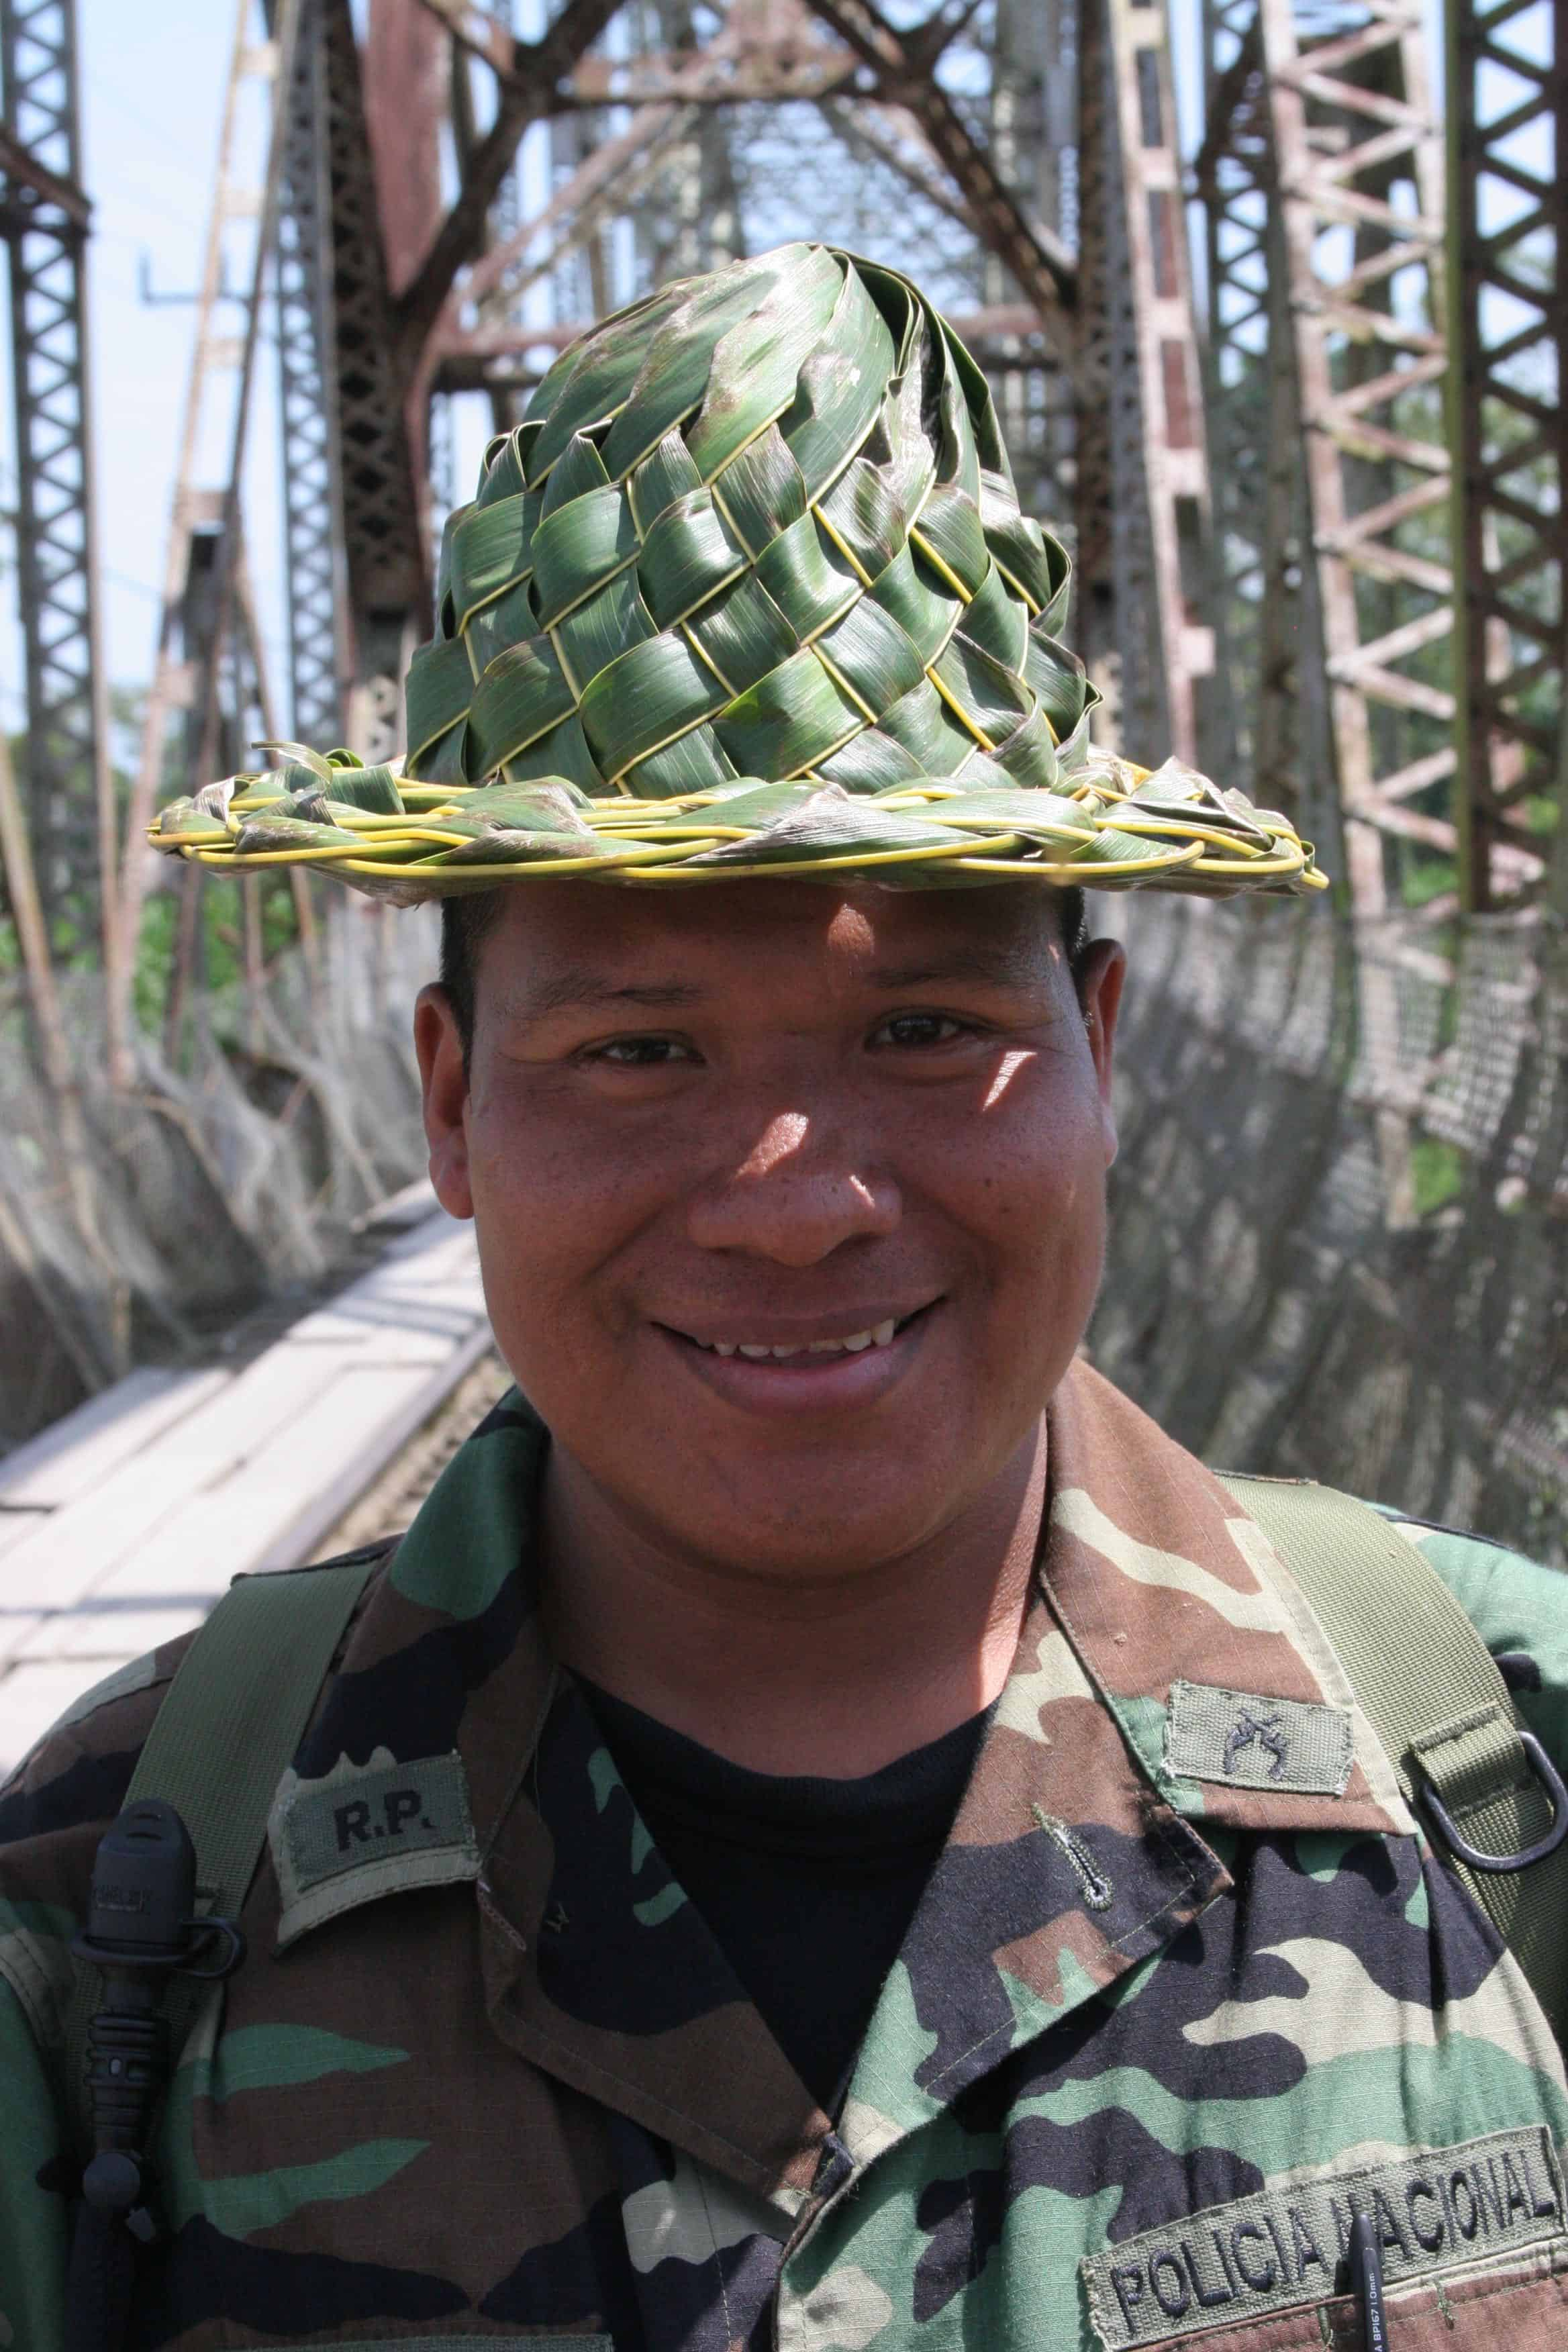 A member of the Panamanian National Police at the Costa Rica-Panama border. July 24, 2006.